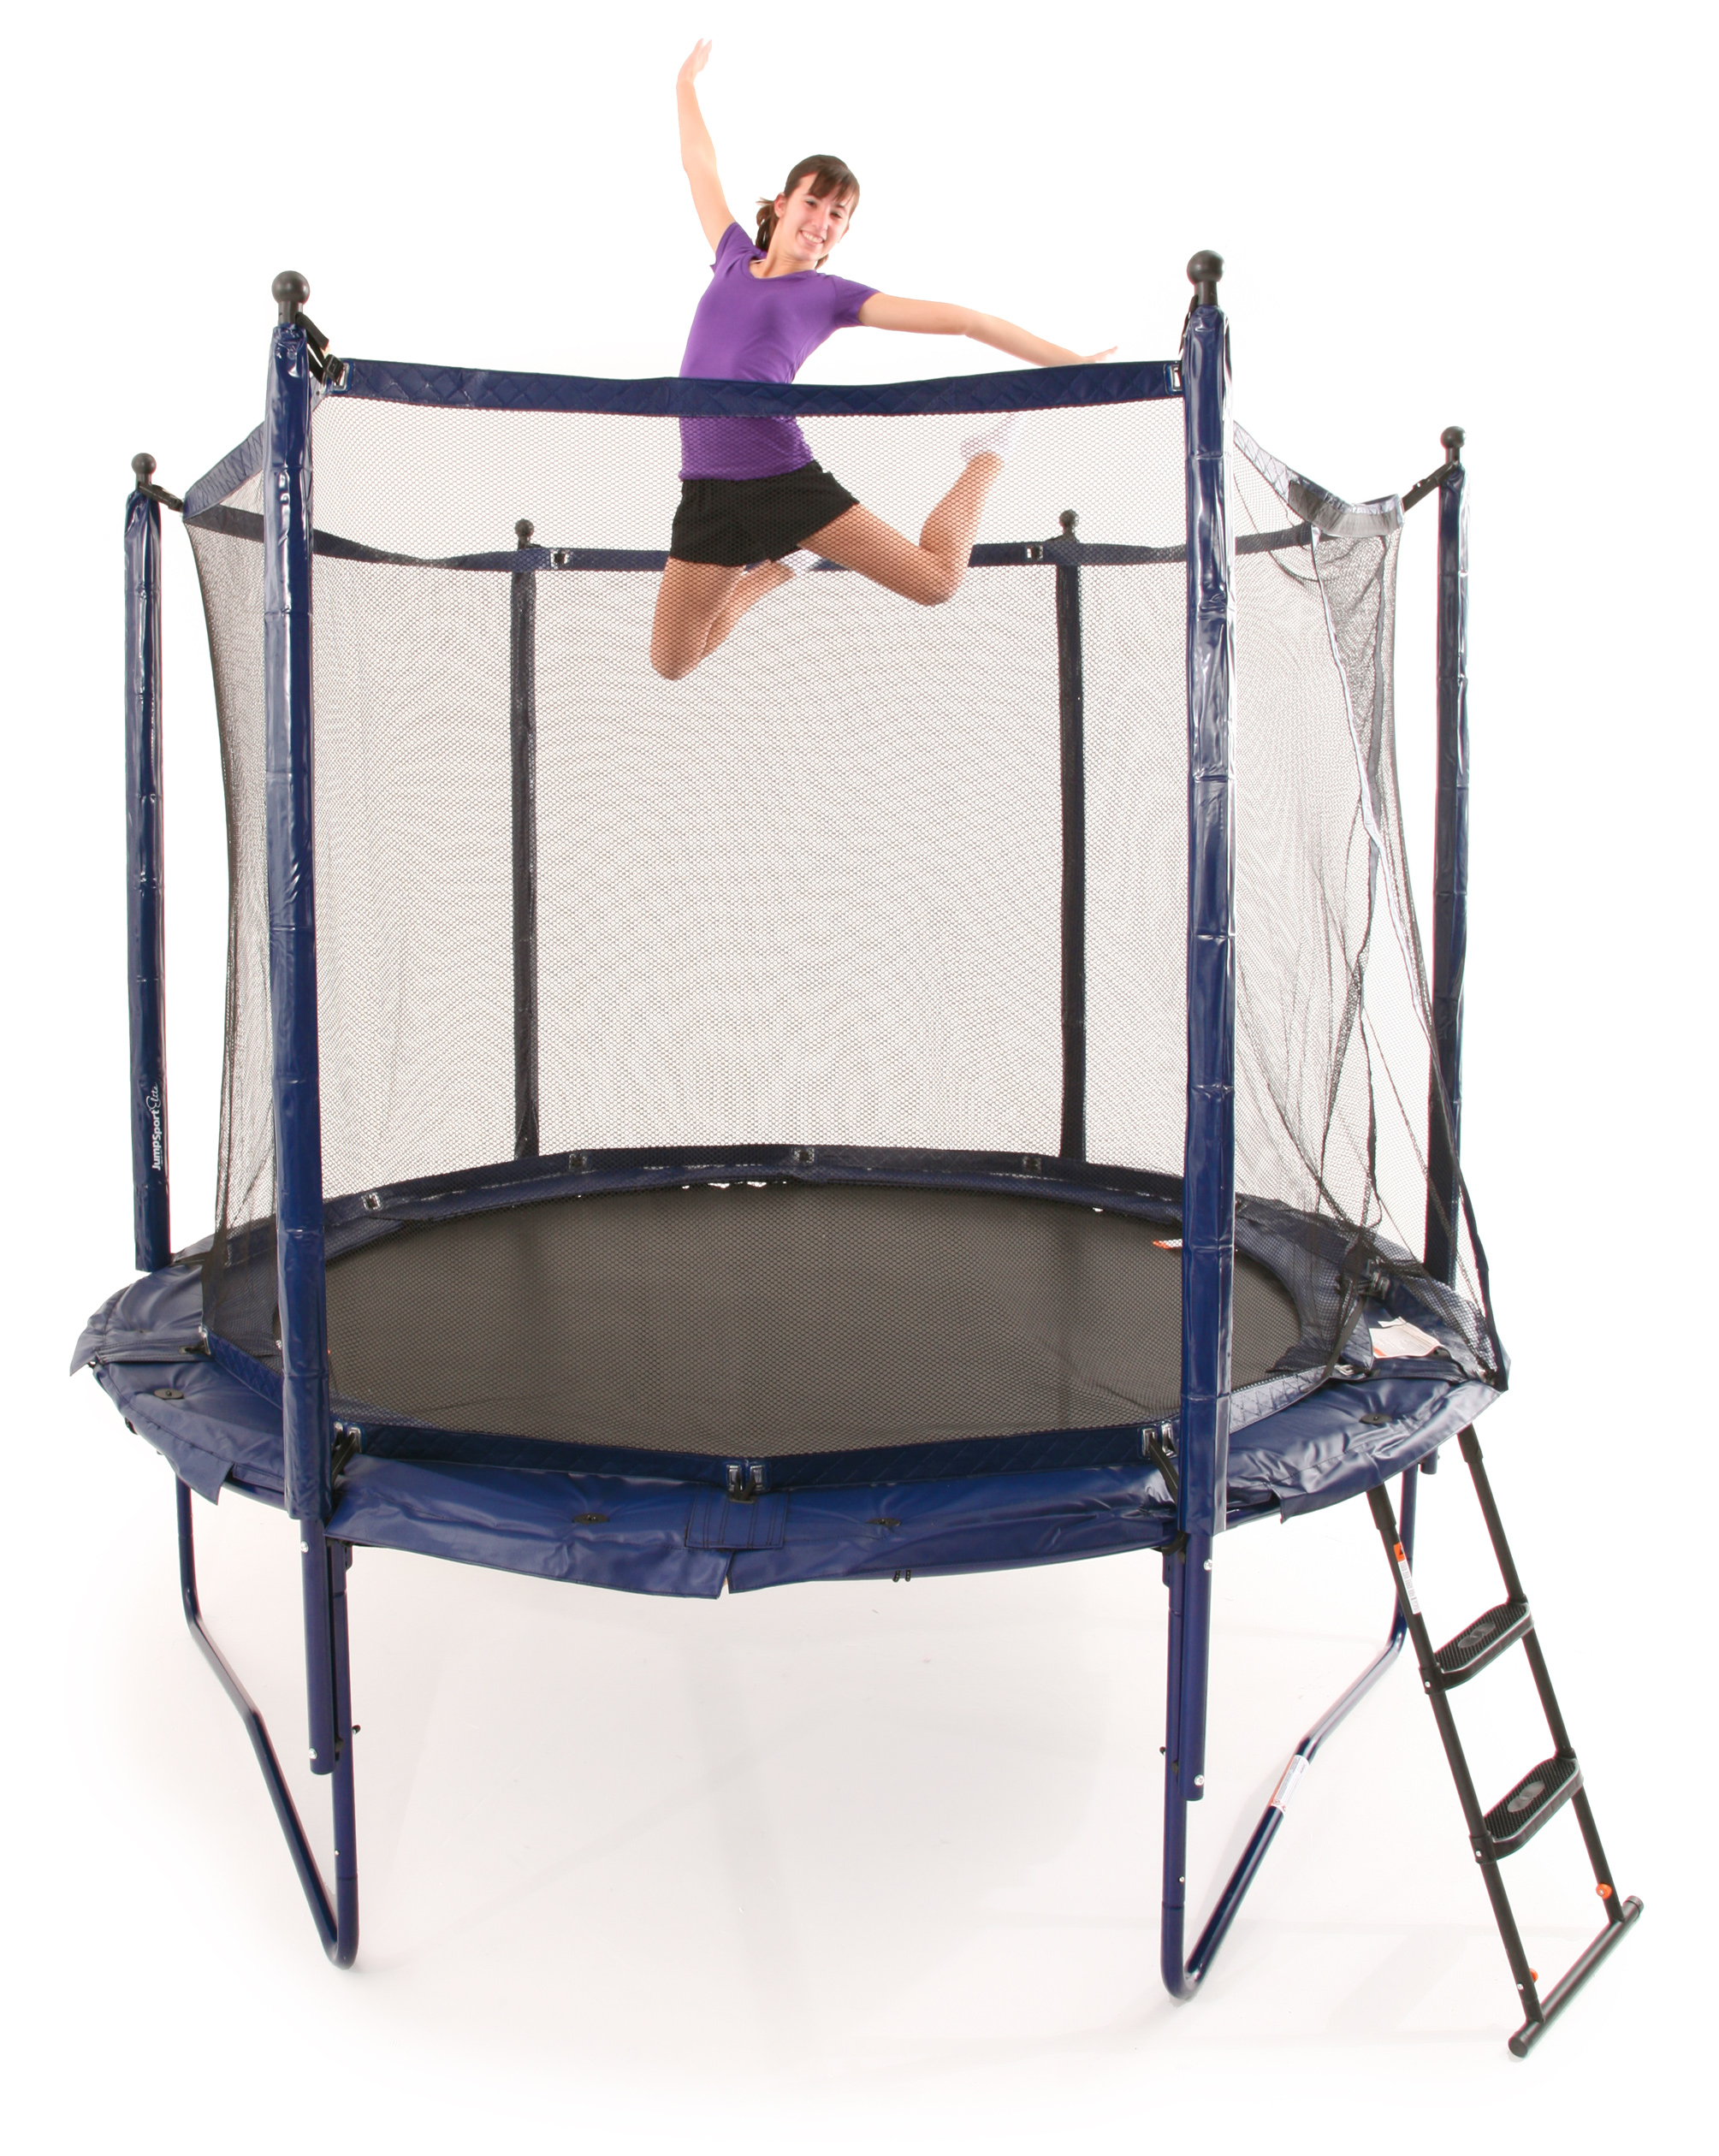 jumpsport elite js elite 10 system with enclosure v1 trampoline 0 0 JumpSport Elite 10 ft Trampoline and Enclosure